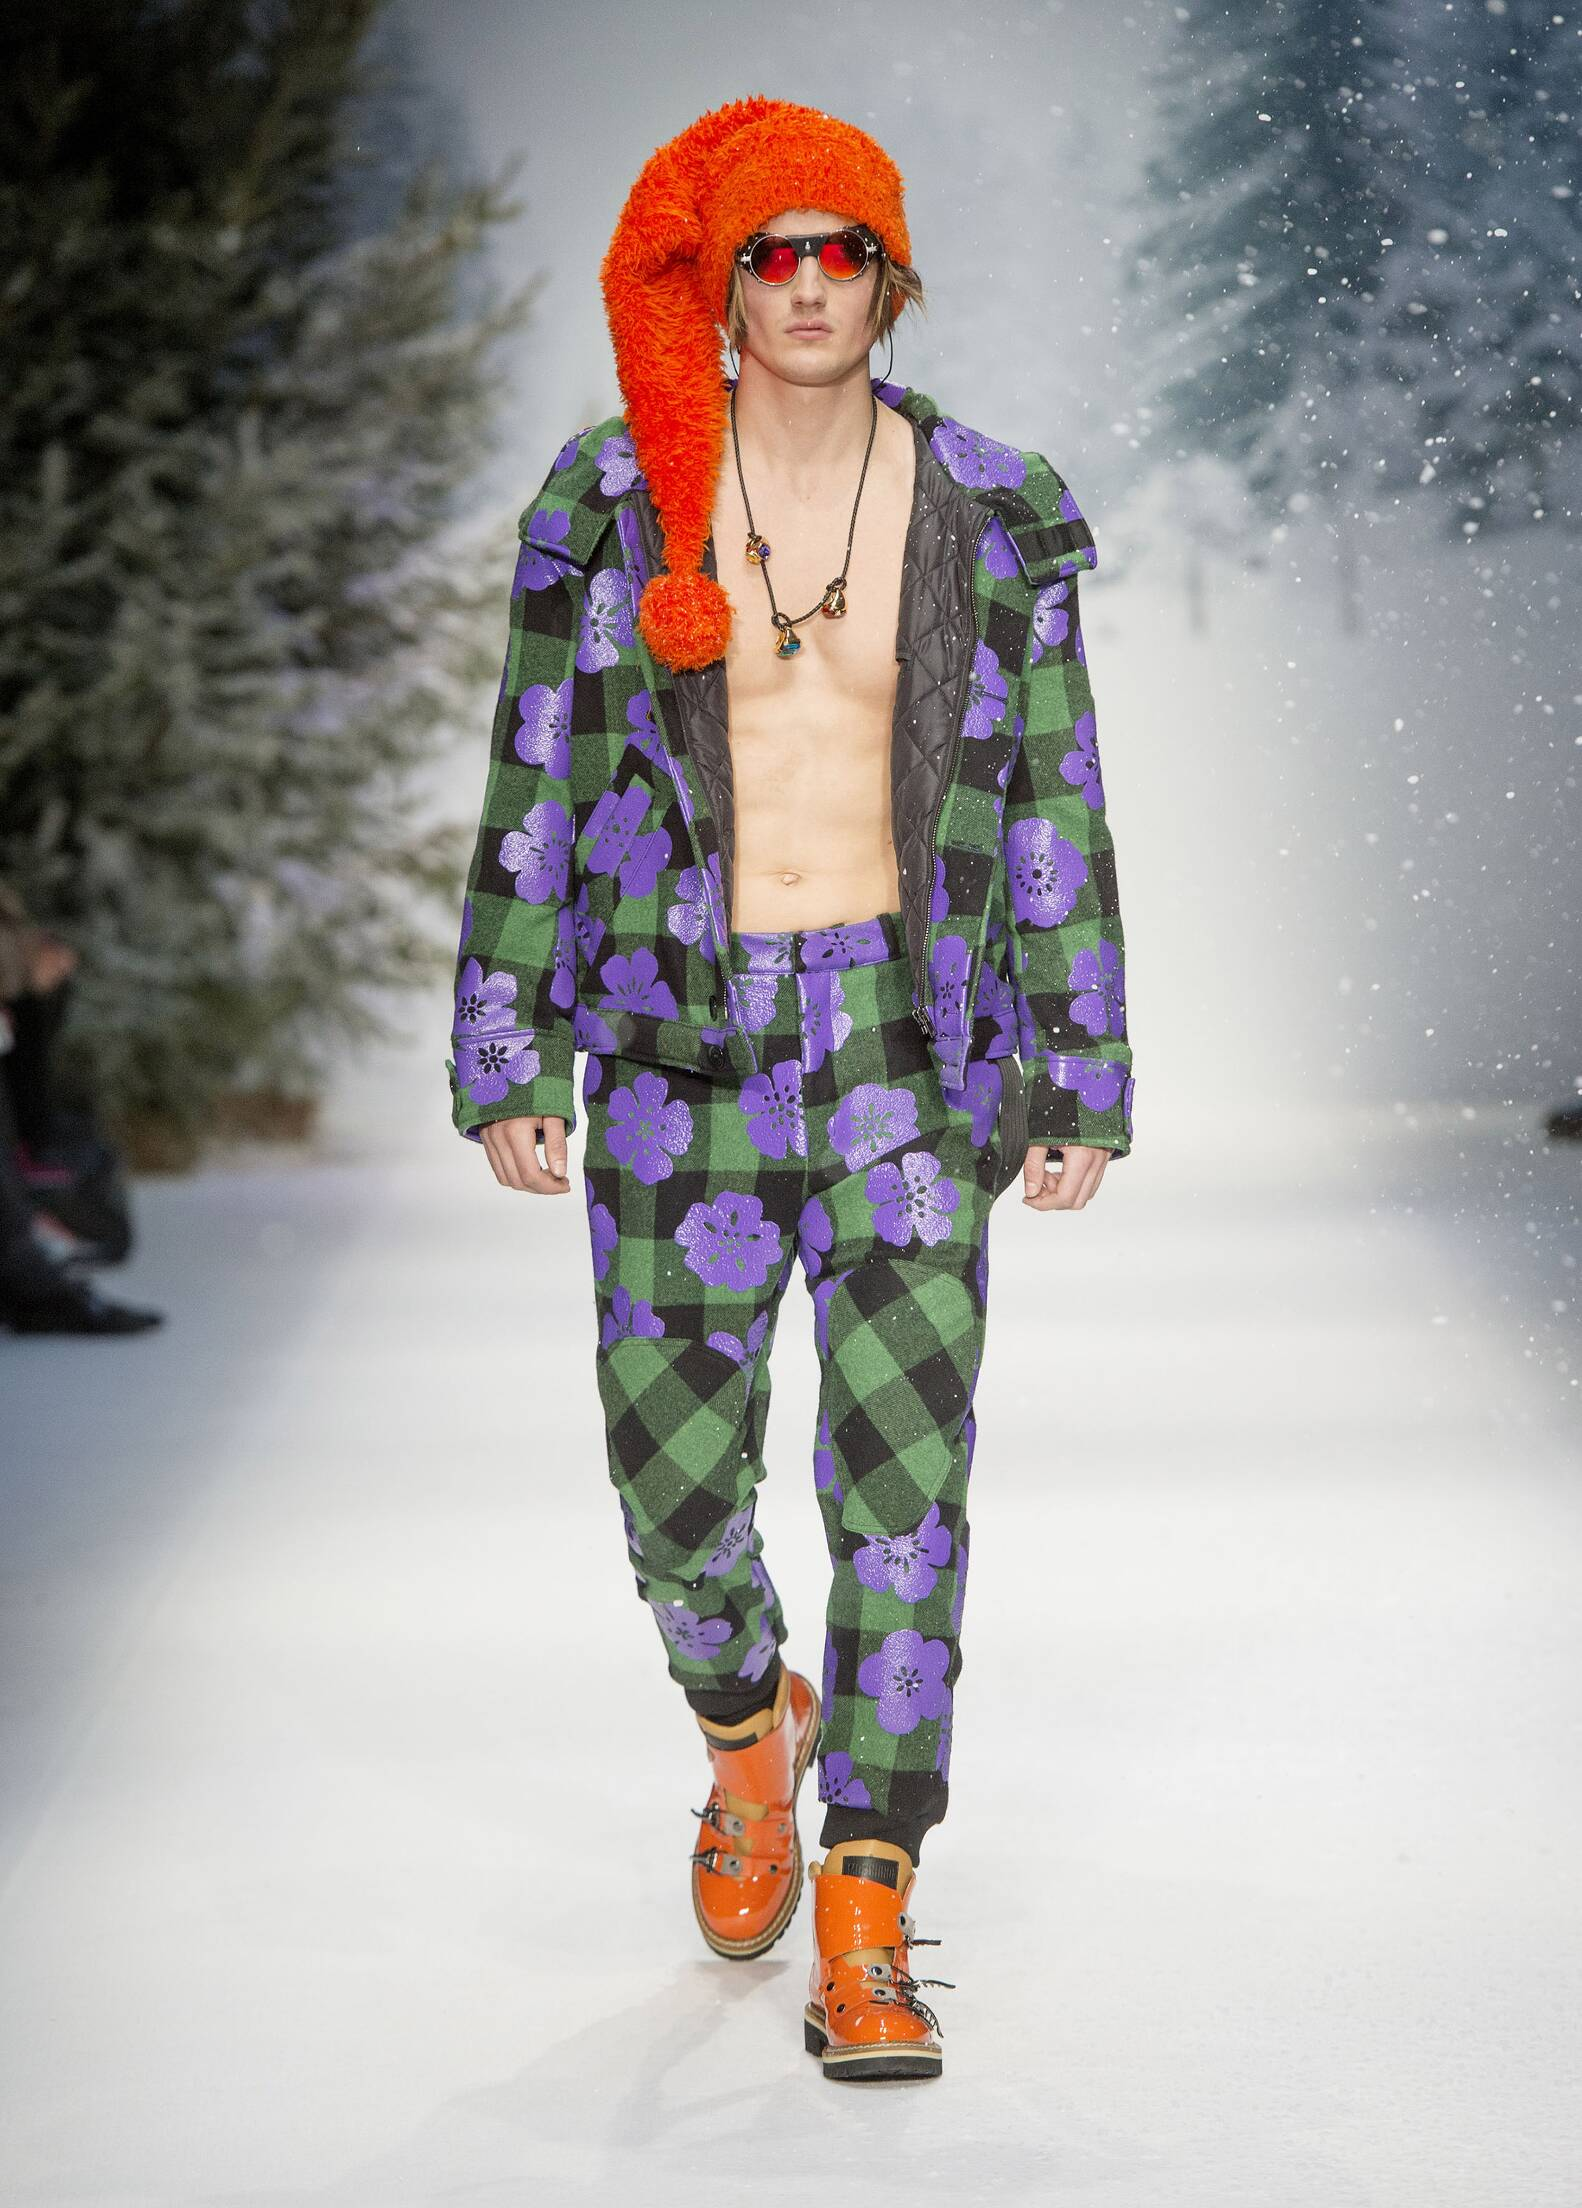 2015 Catwalk Moschino Man Fashion Show Winter